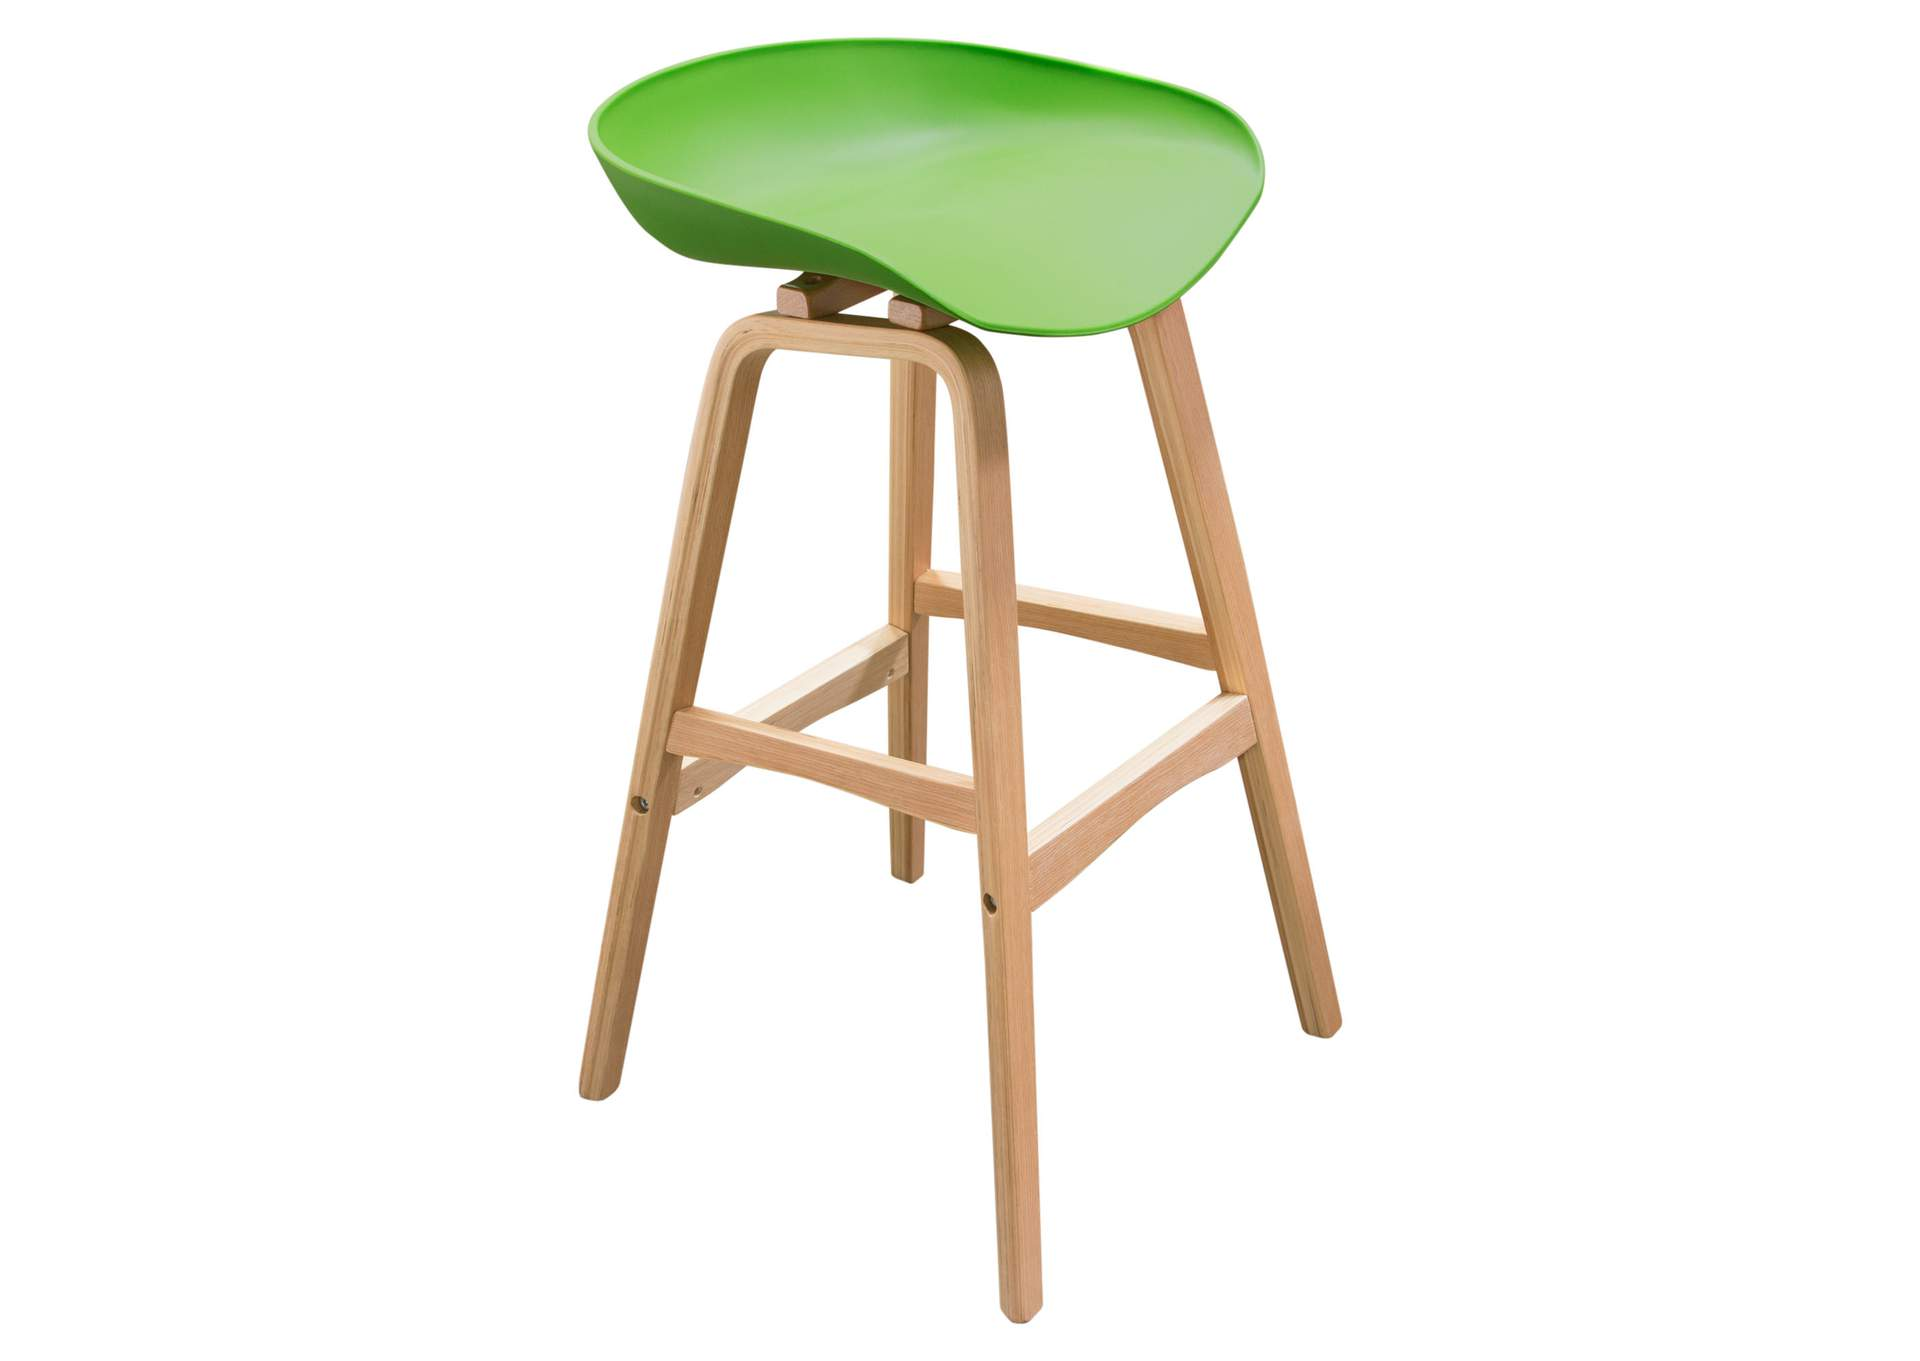 Brentwood Green Bar Height Stool w/Molded Bamboo Frame,Diamond Sofa